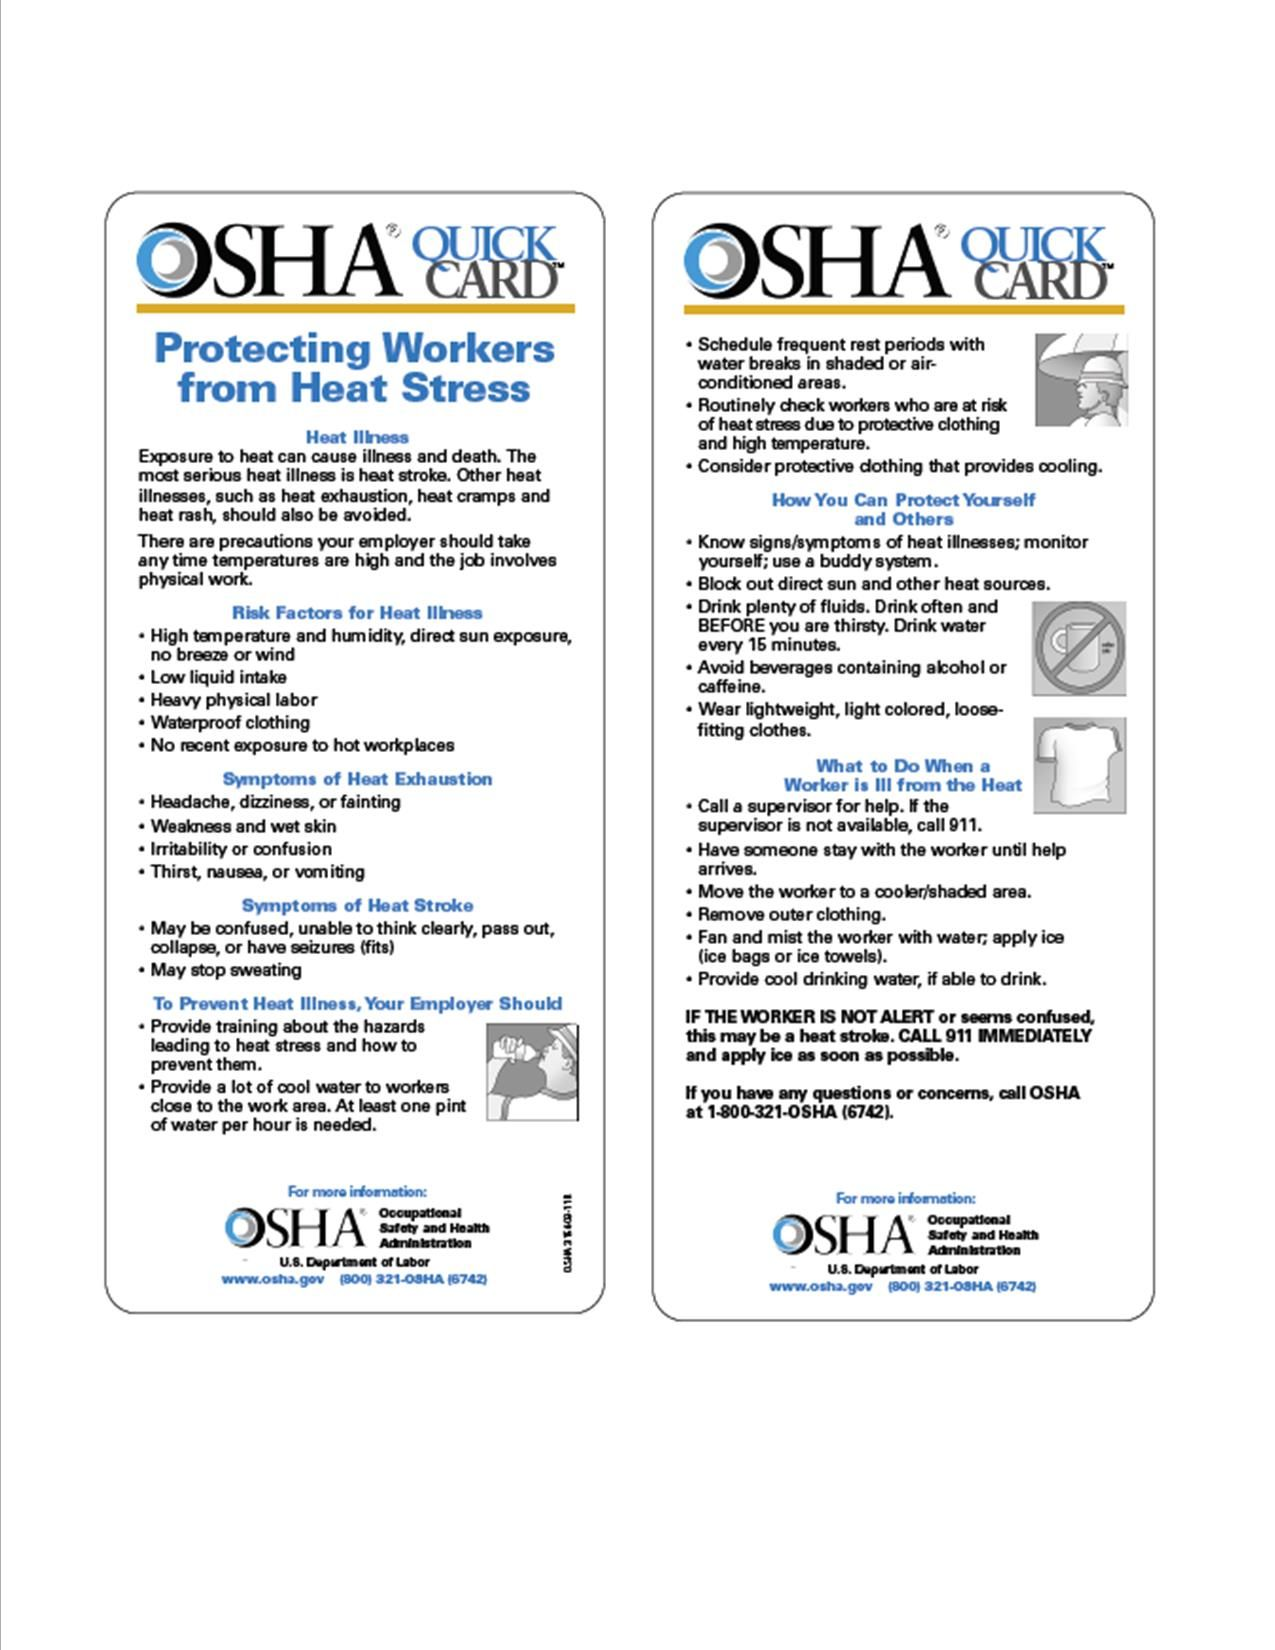 Pin By Commonwealth Real Estate Servi On Safety Tips And Tidbits Osha Quick Cards Safety Tips